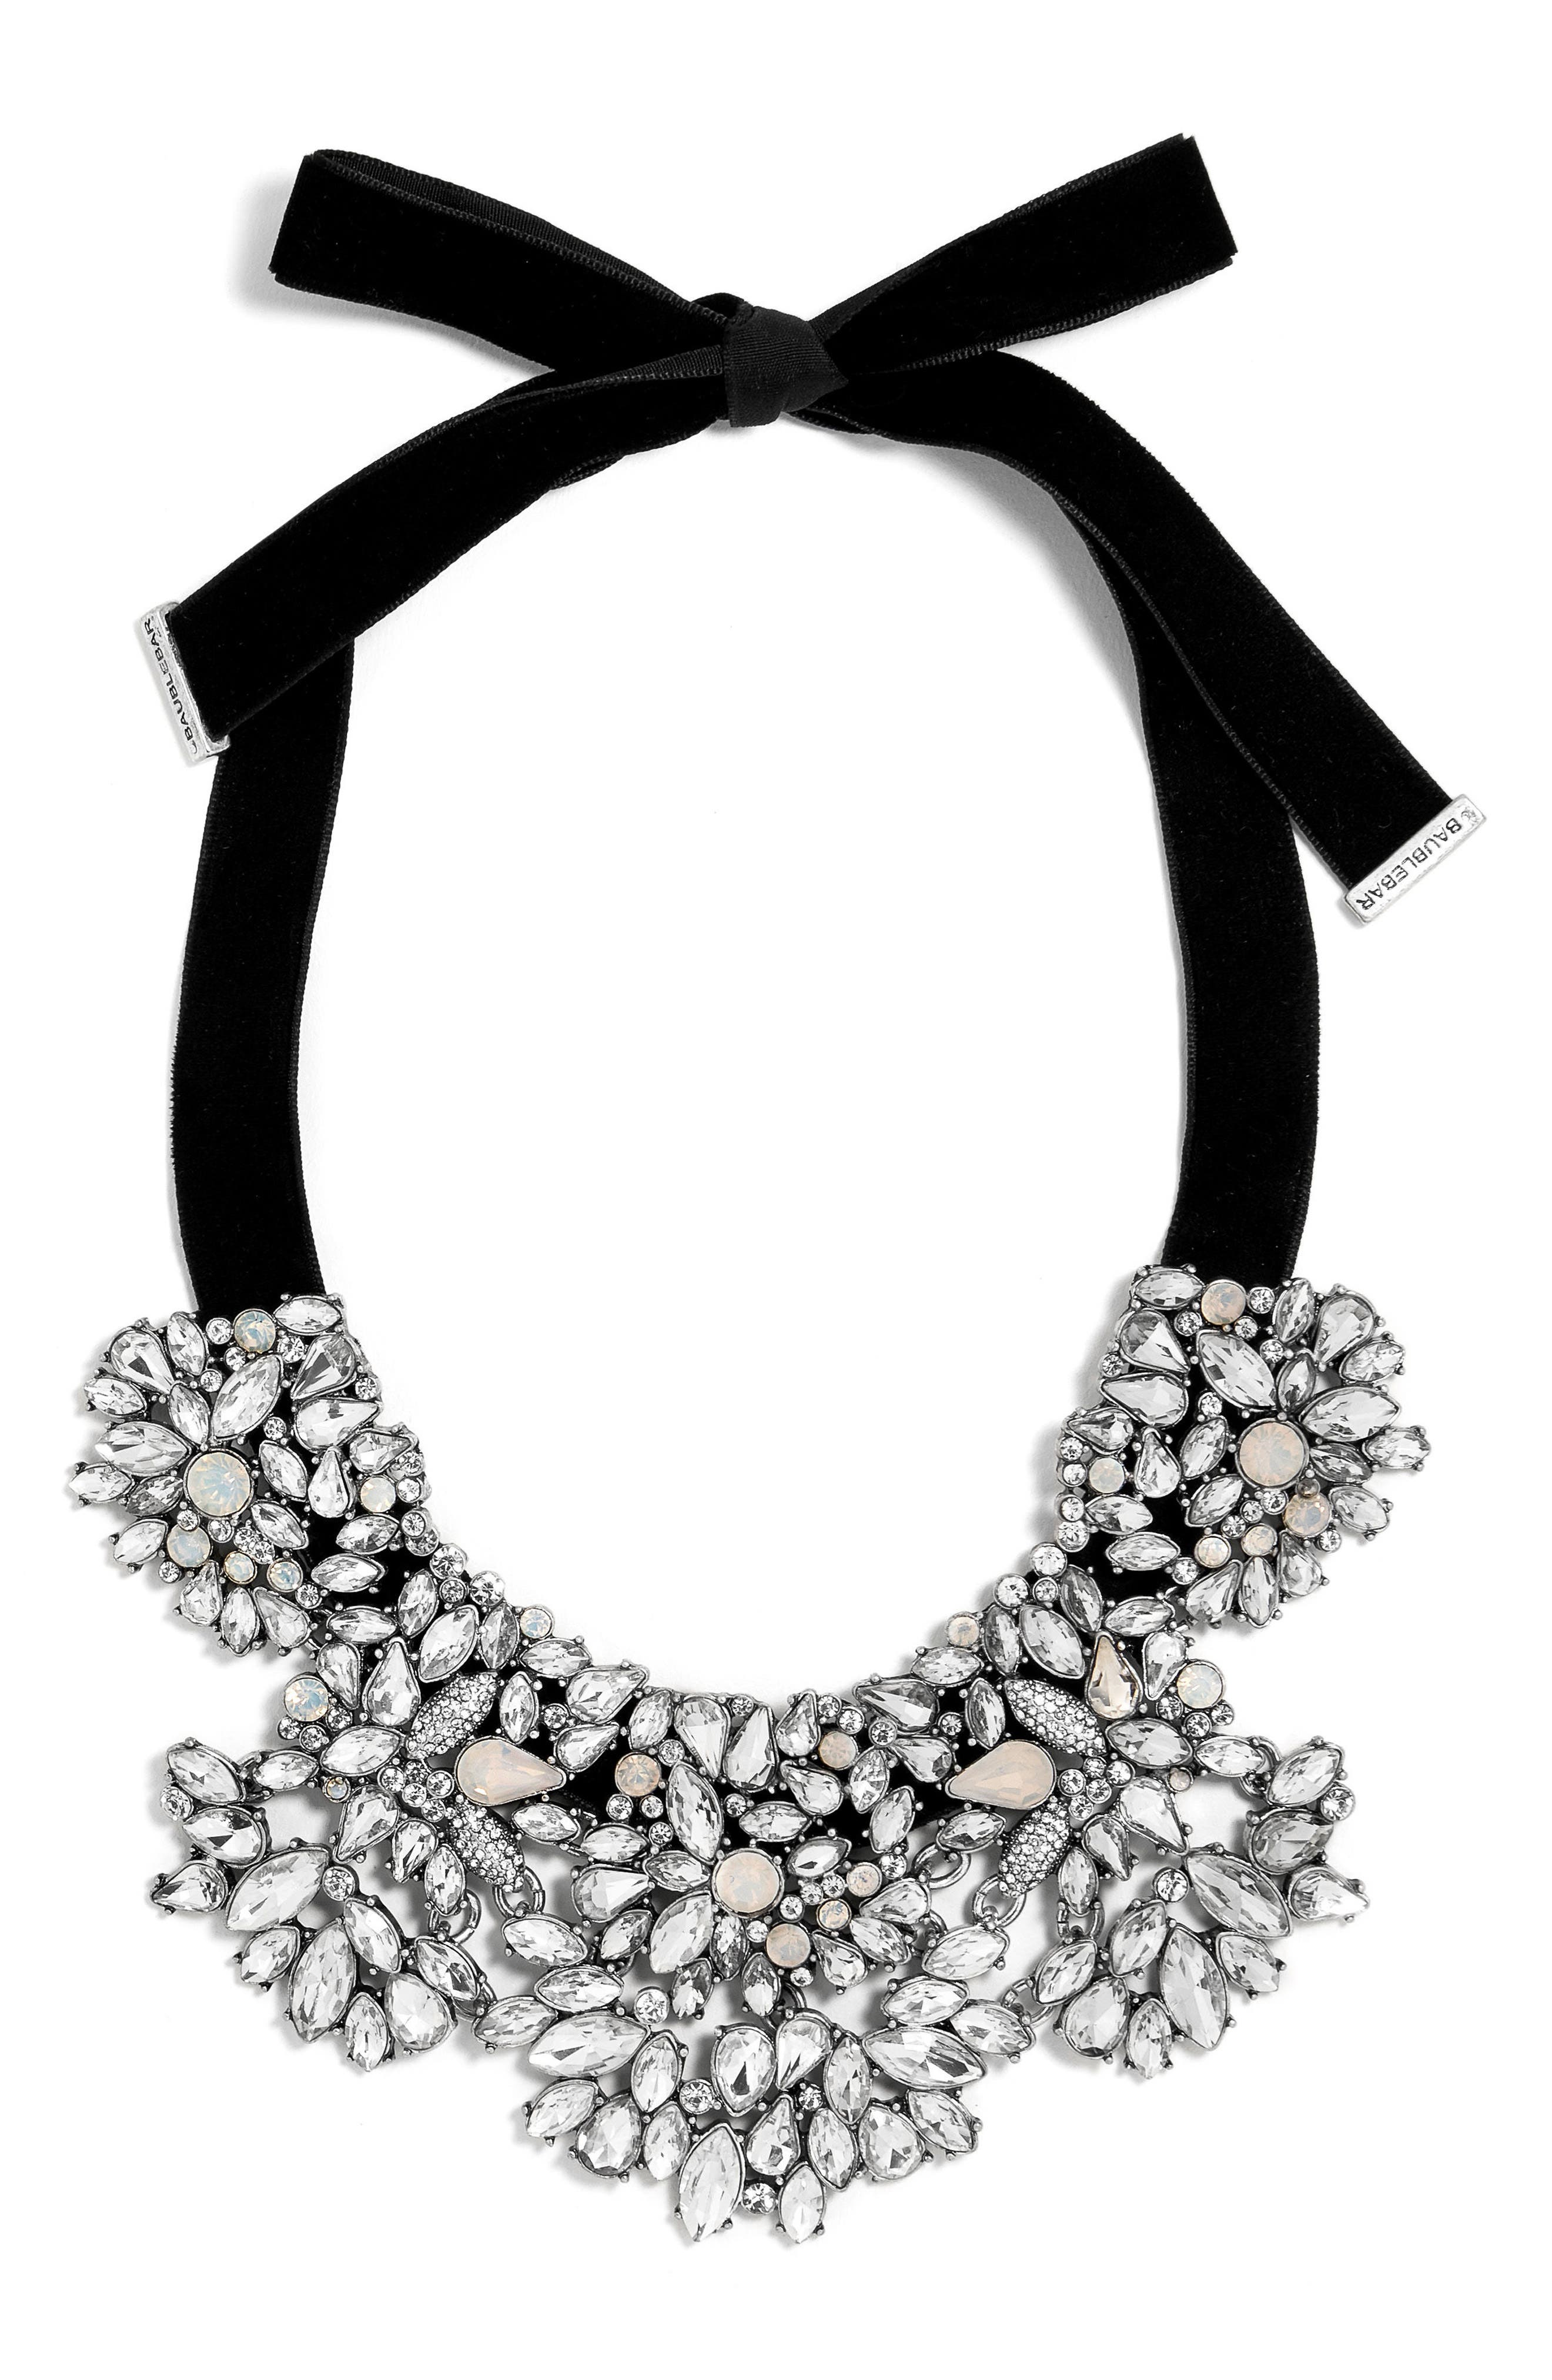 Crystal Shatter Statement Necklace,                             Main thumbnail 1, color,